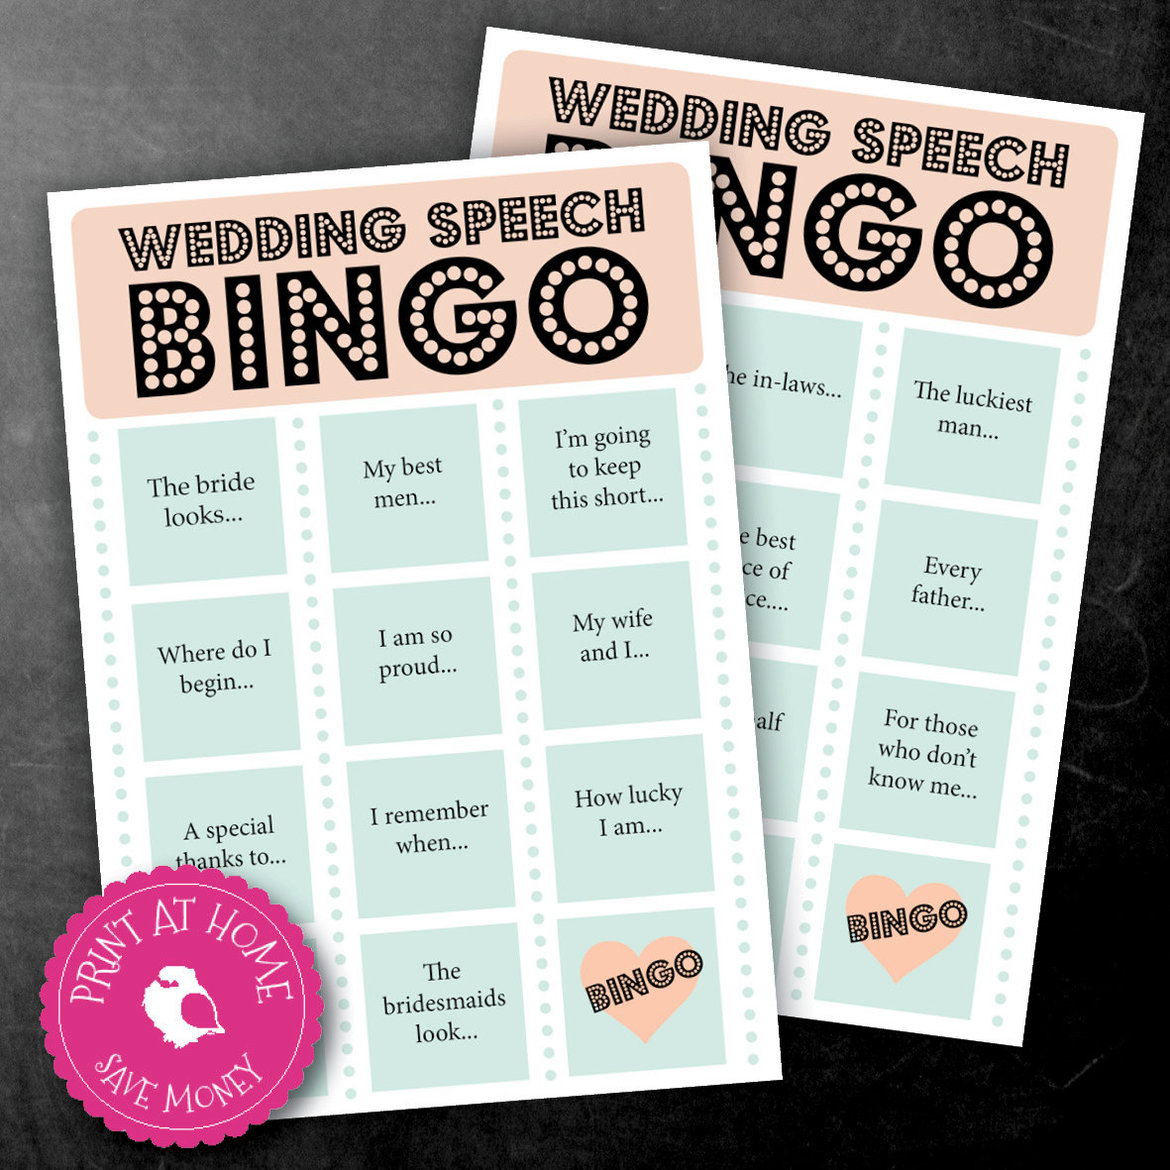 Wedding Reception Games For Guests: 50 Ingenious Ideas For Your Wedding Reception